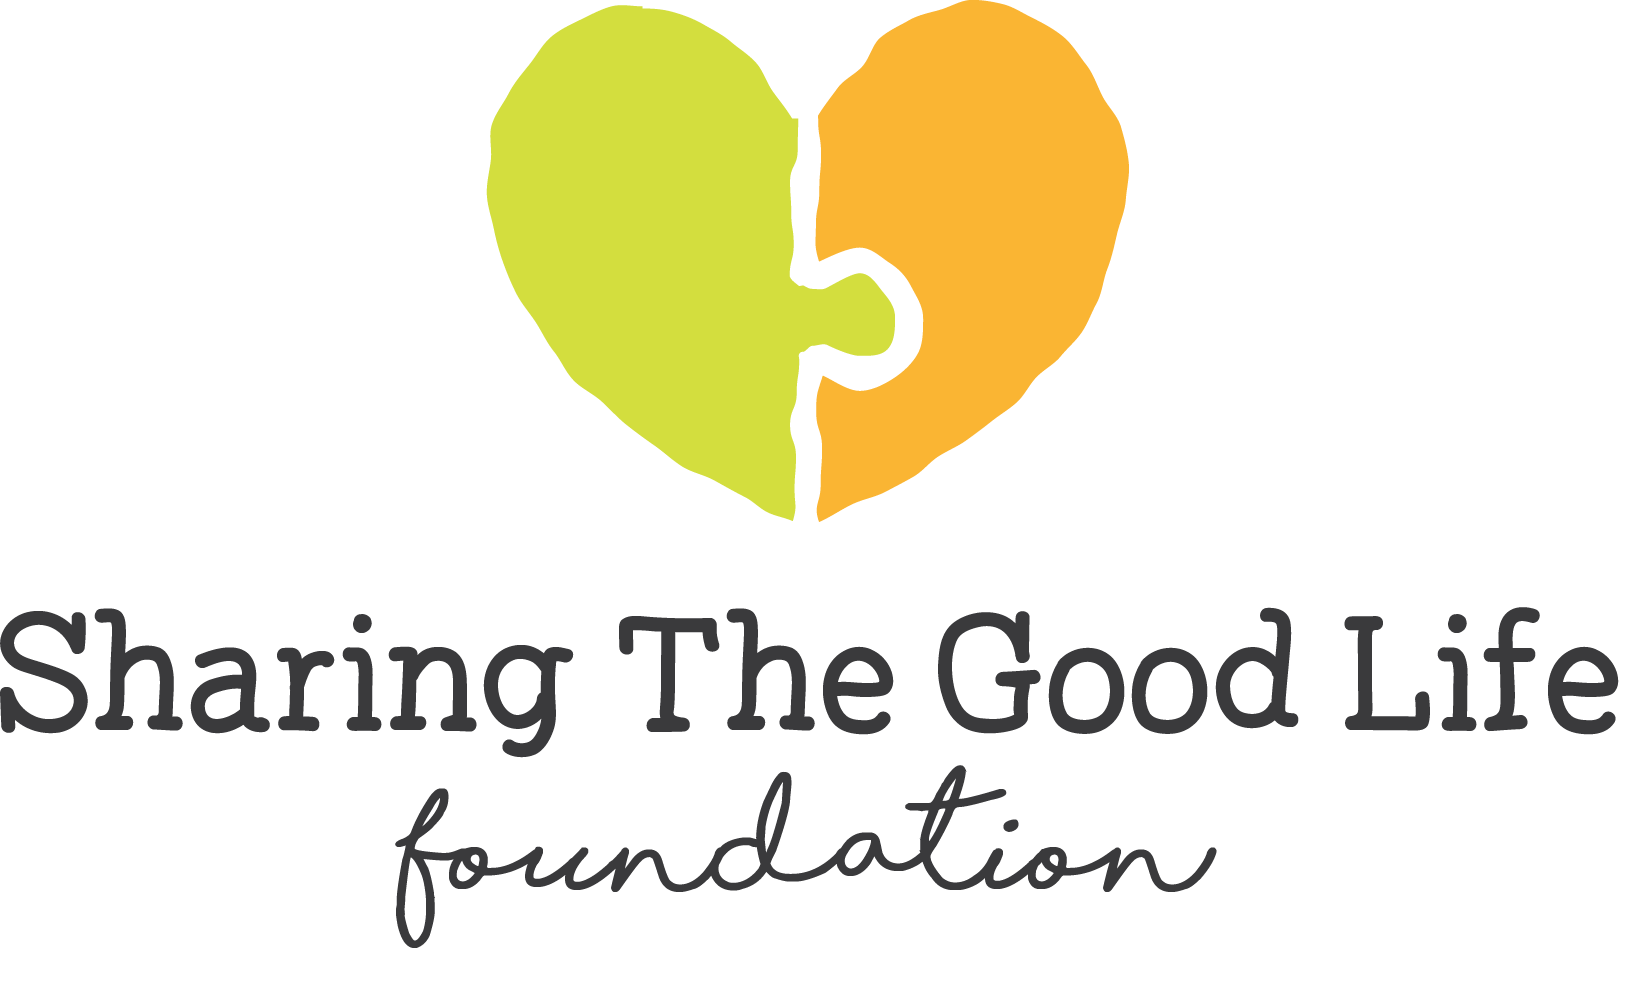 Sharing The Good Life Foundation